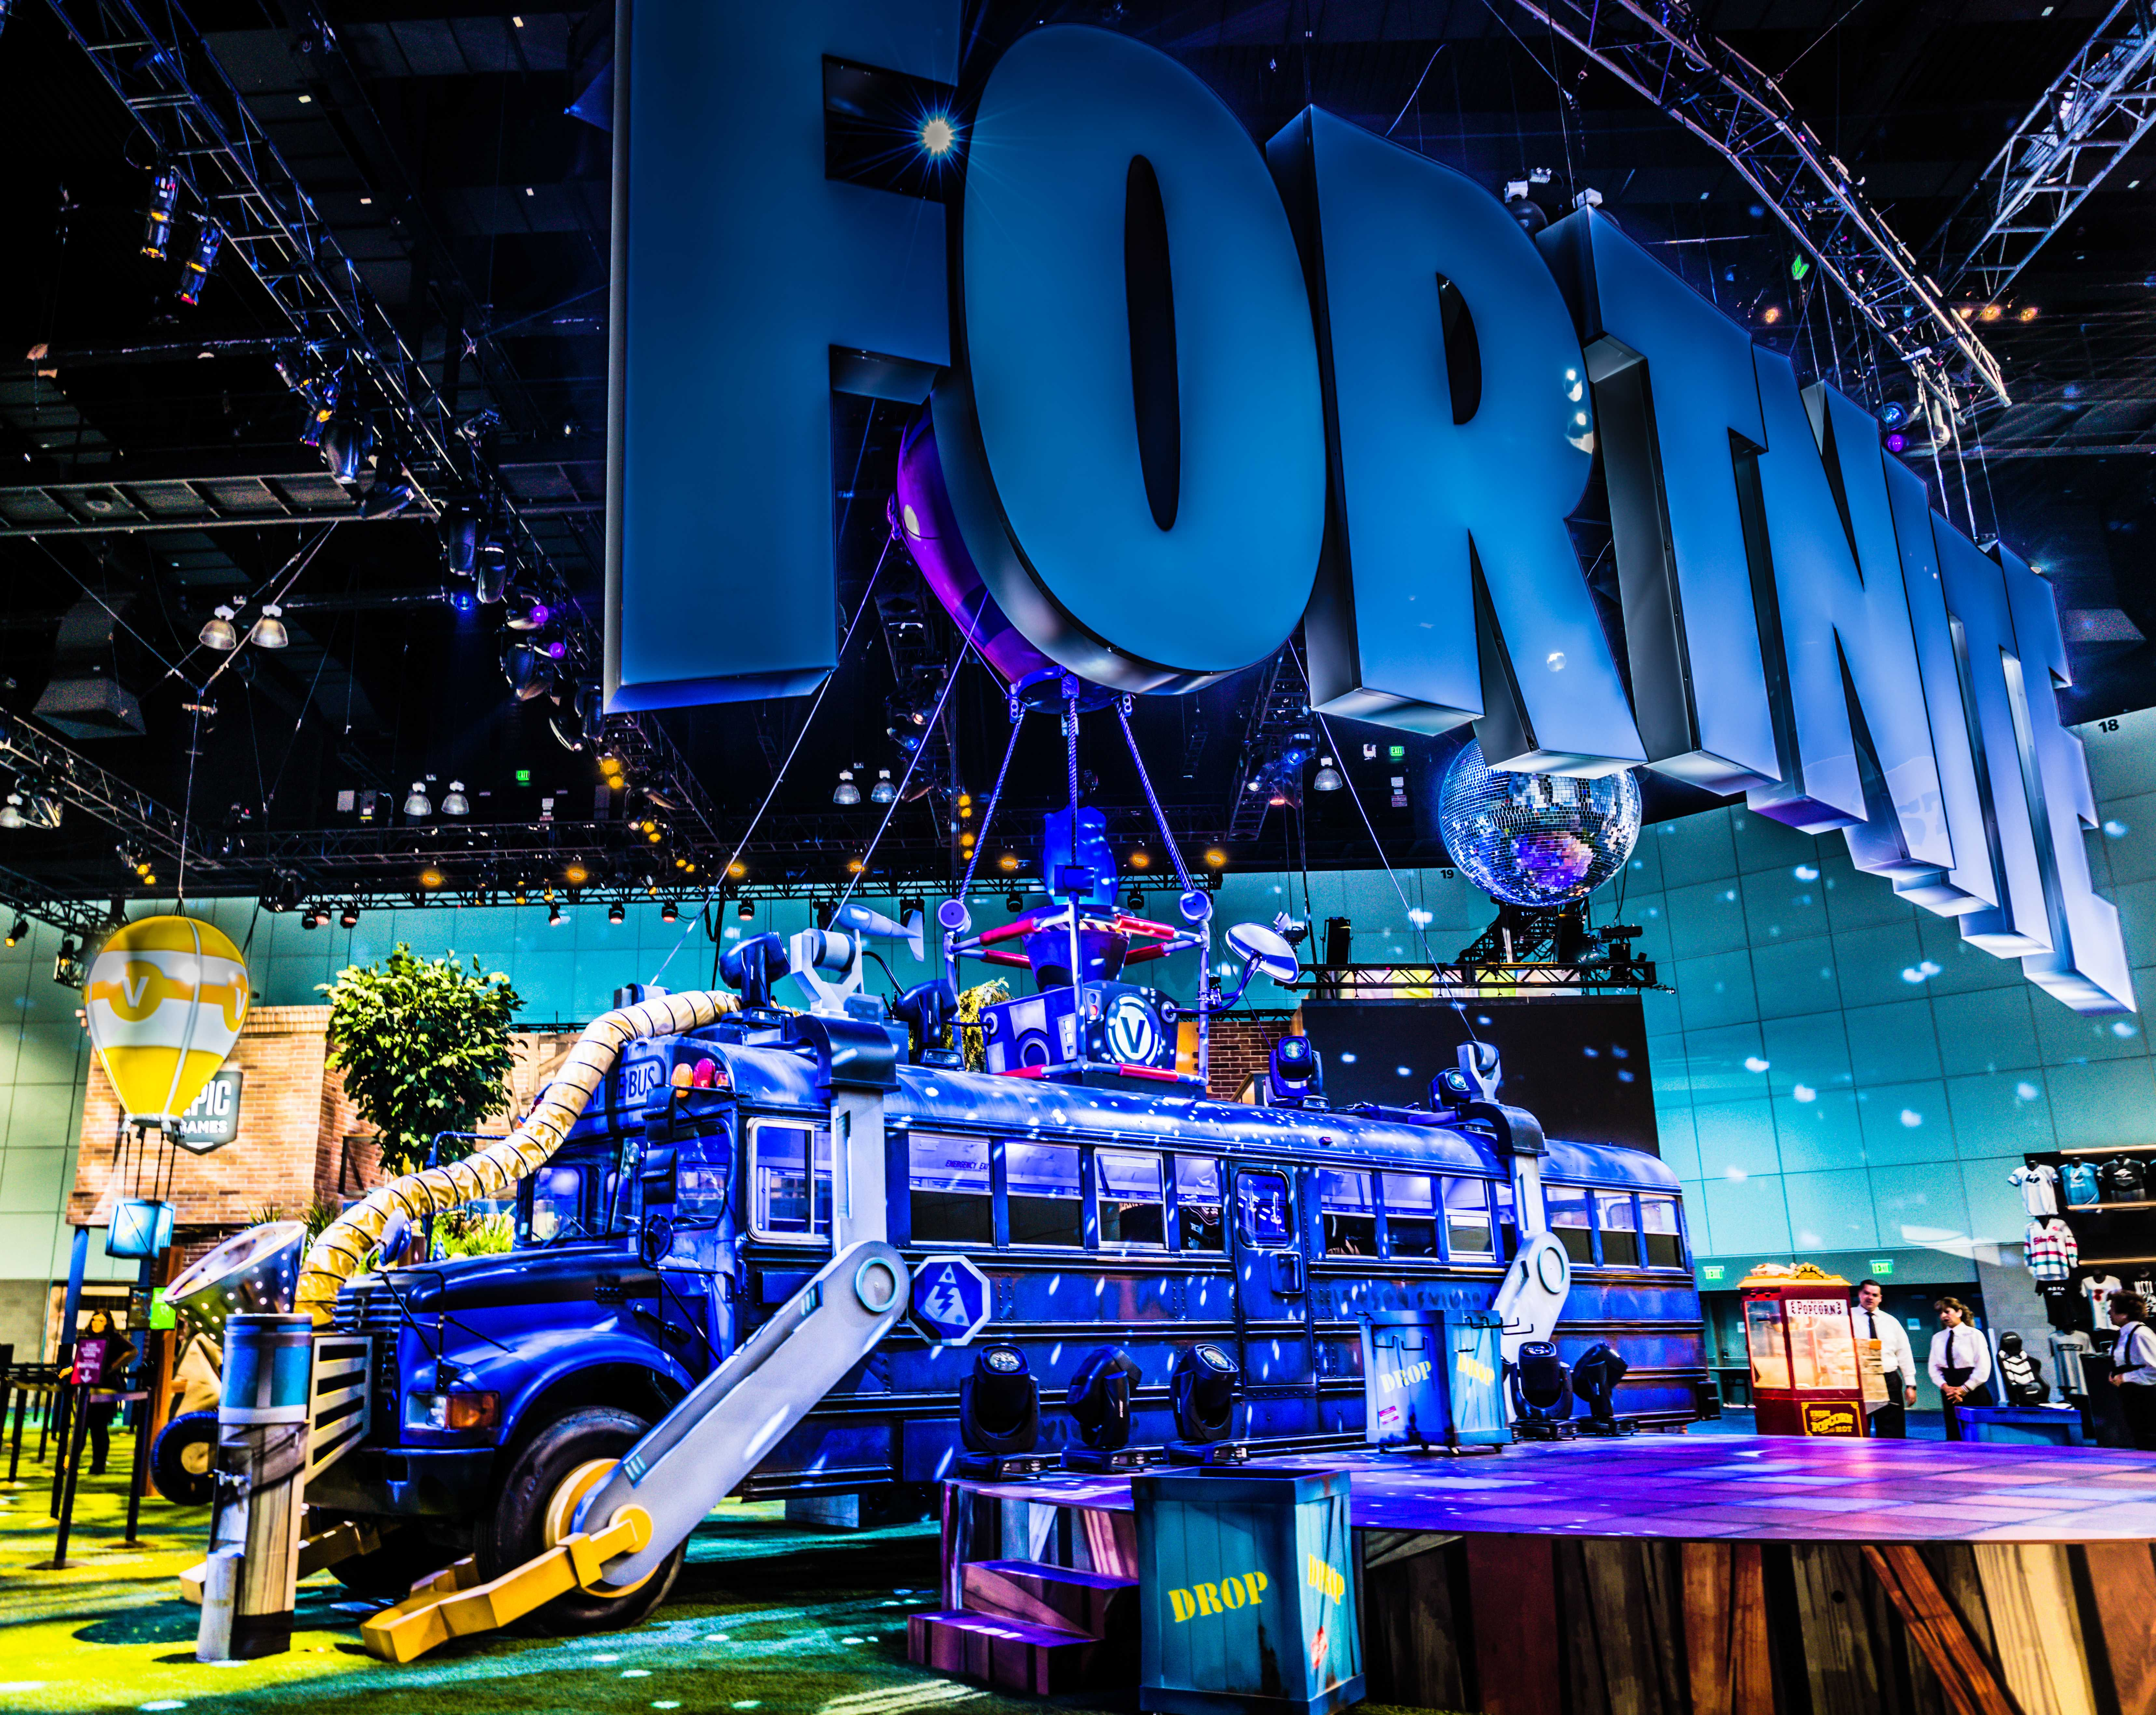 Competitive 'Fortnite' needs an overhaul to become a legitimate esport